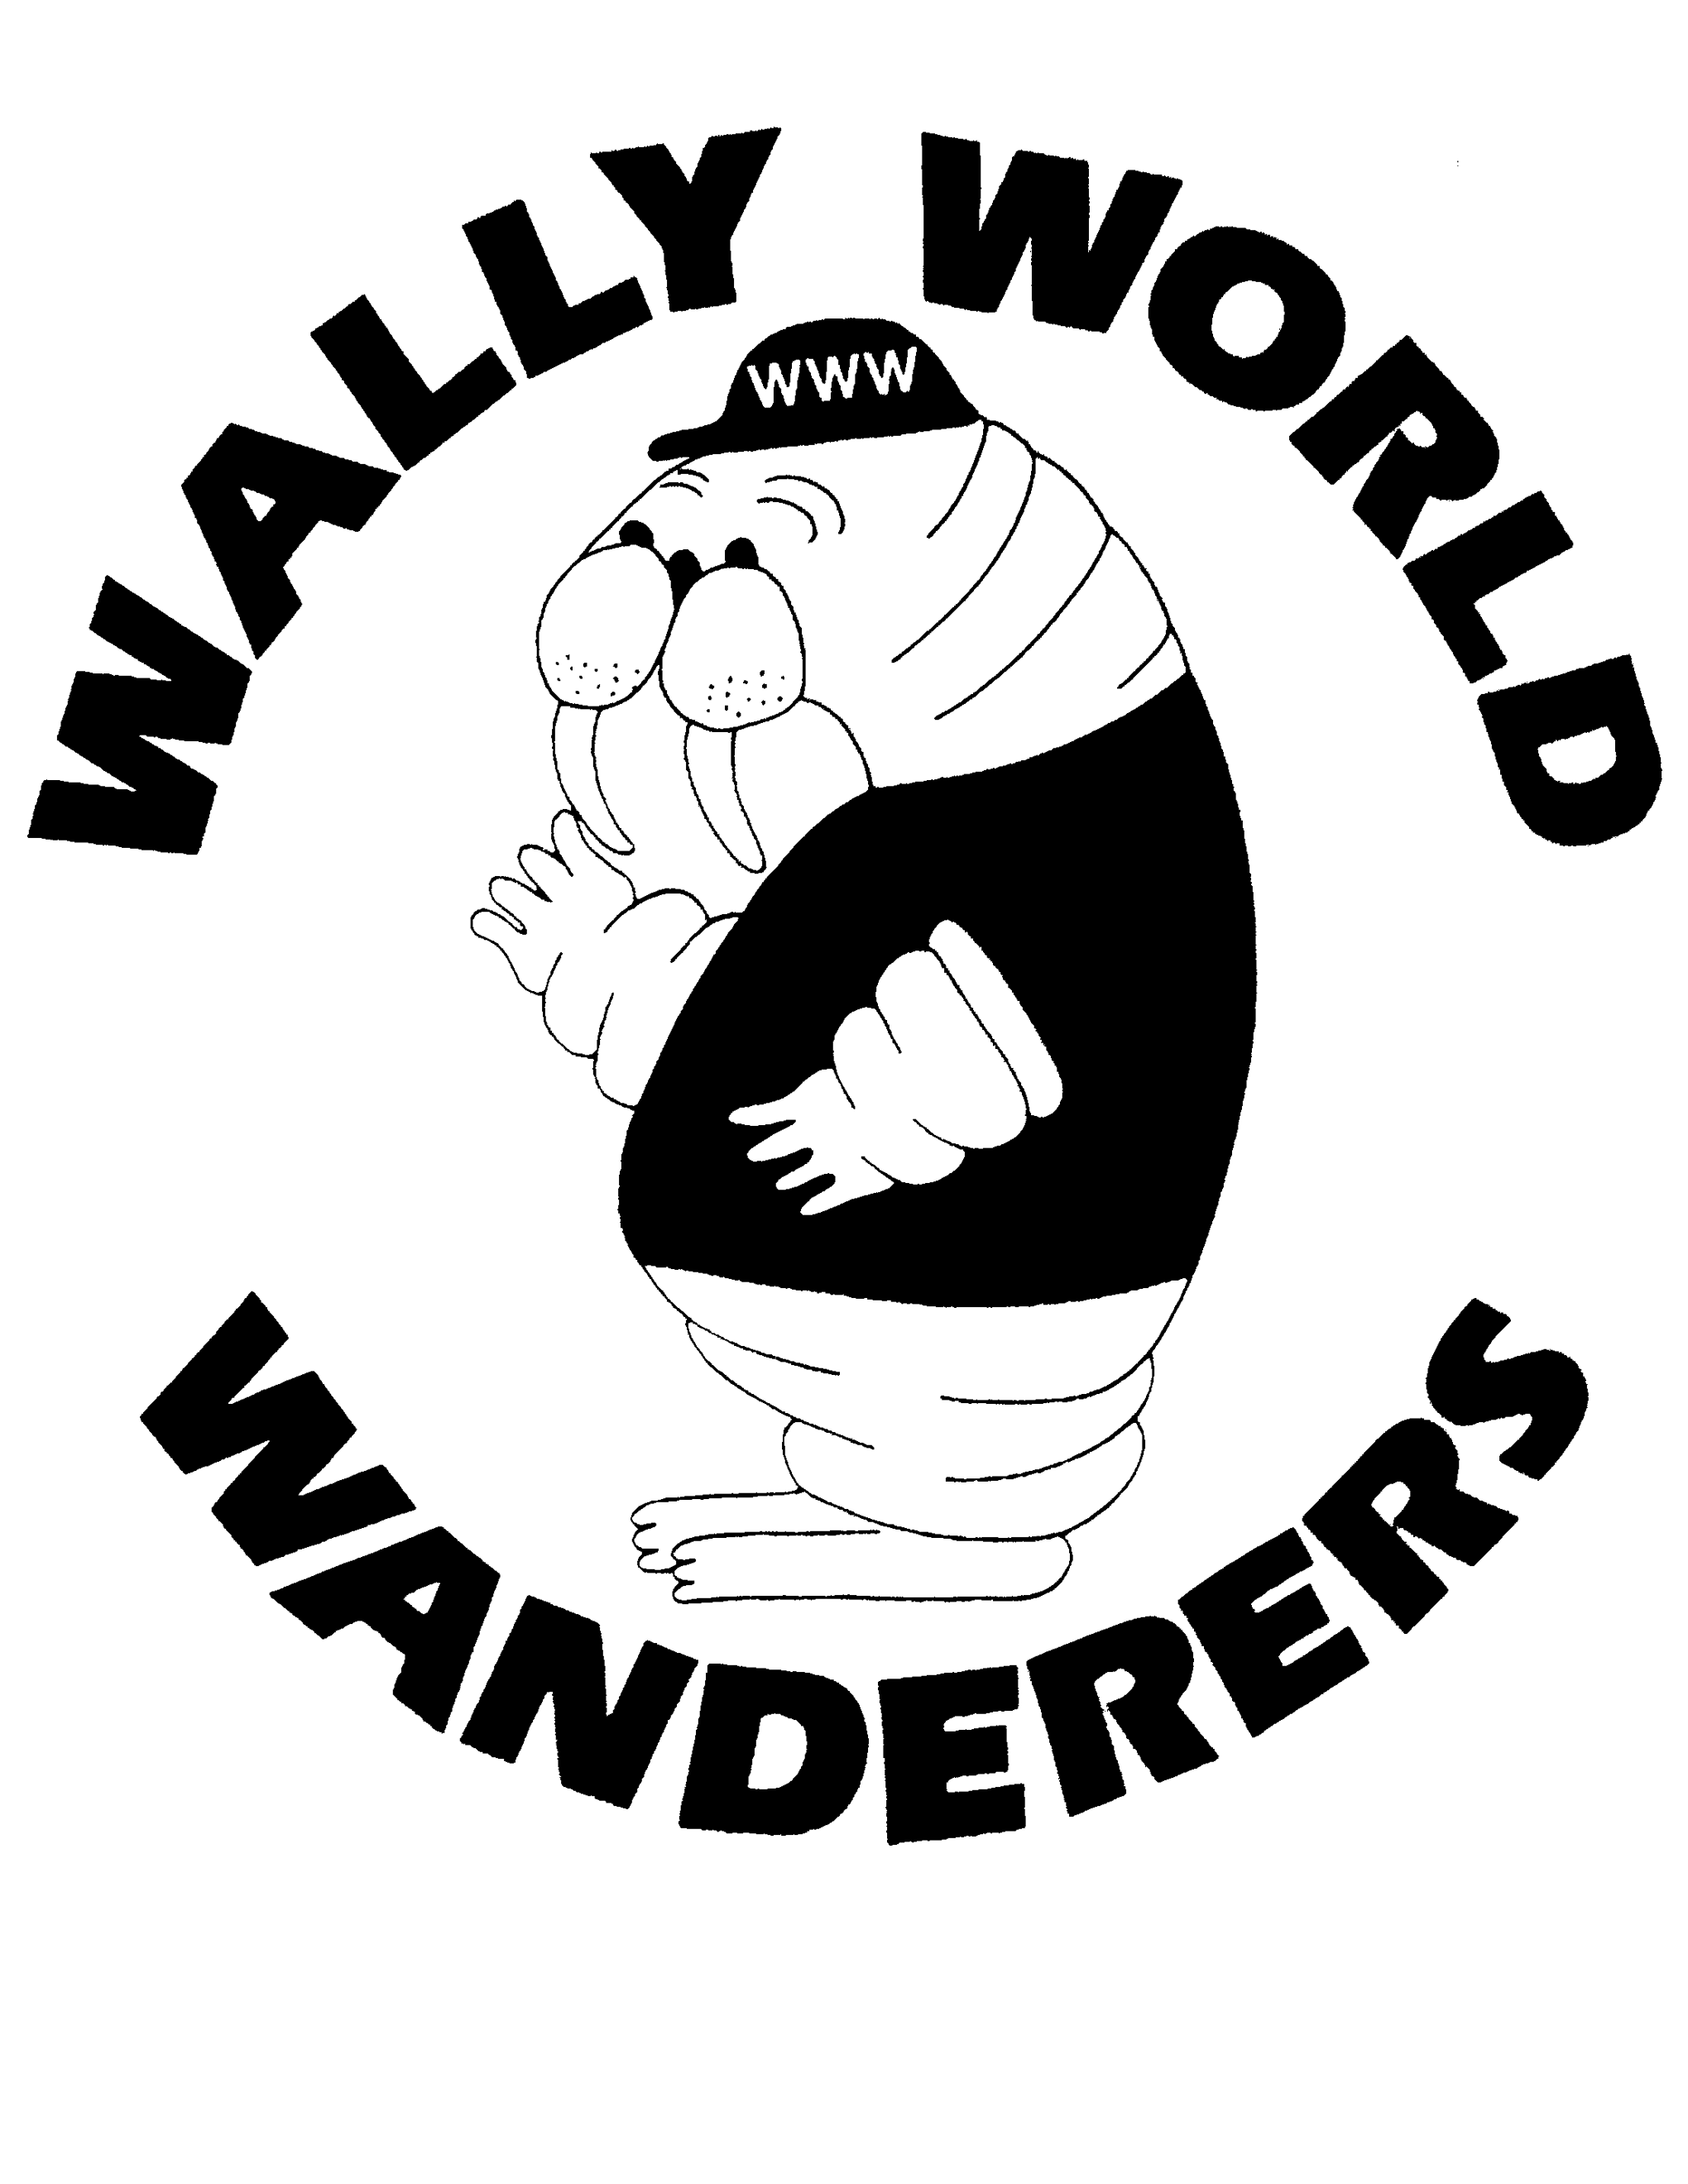 The Wanderers - image 1 - student project